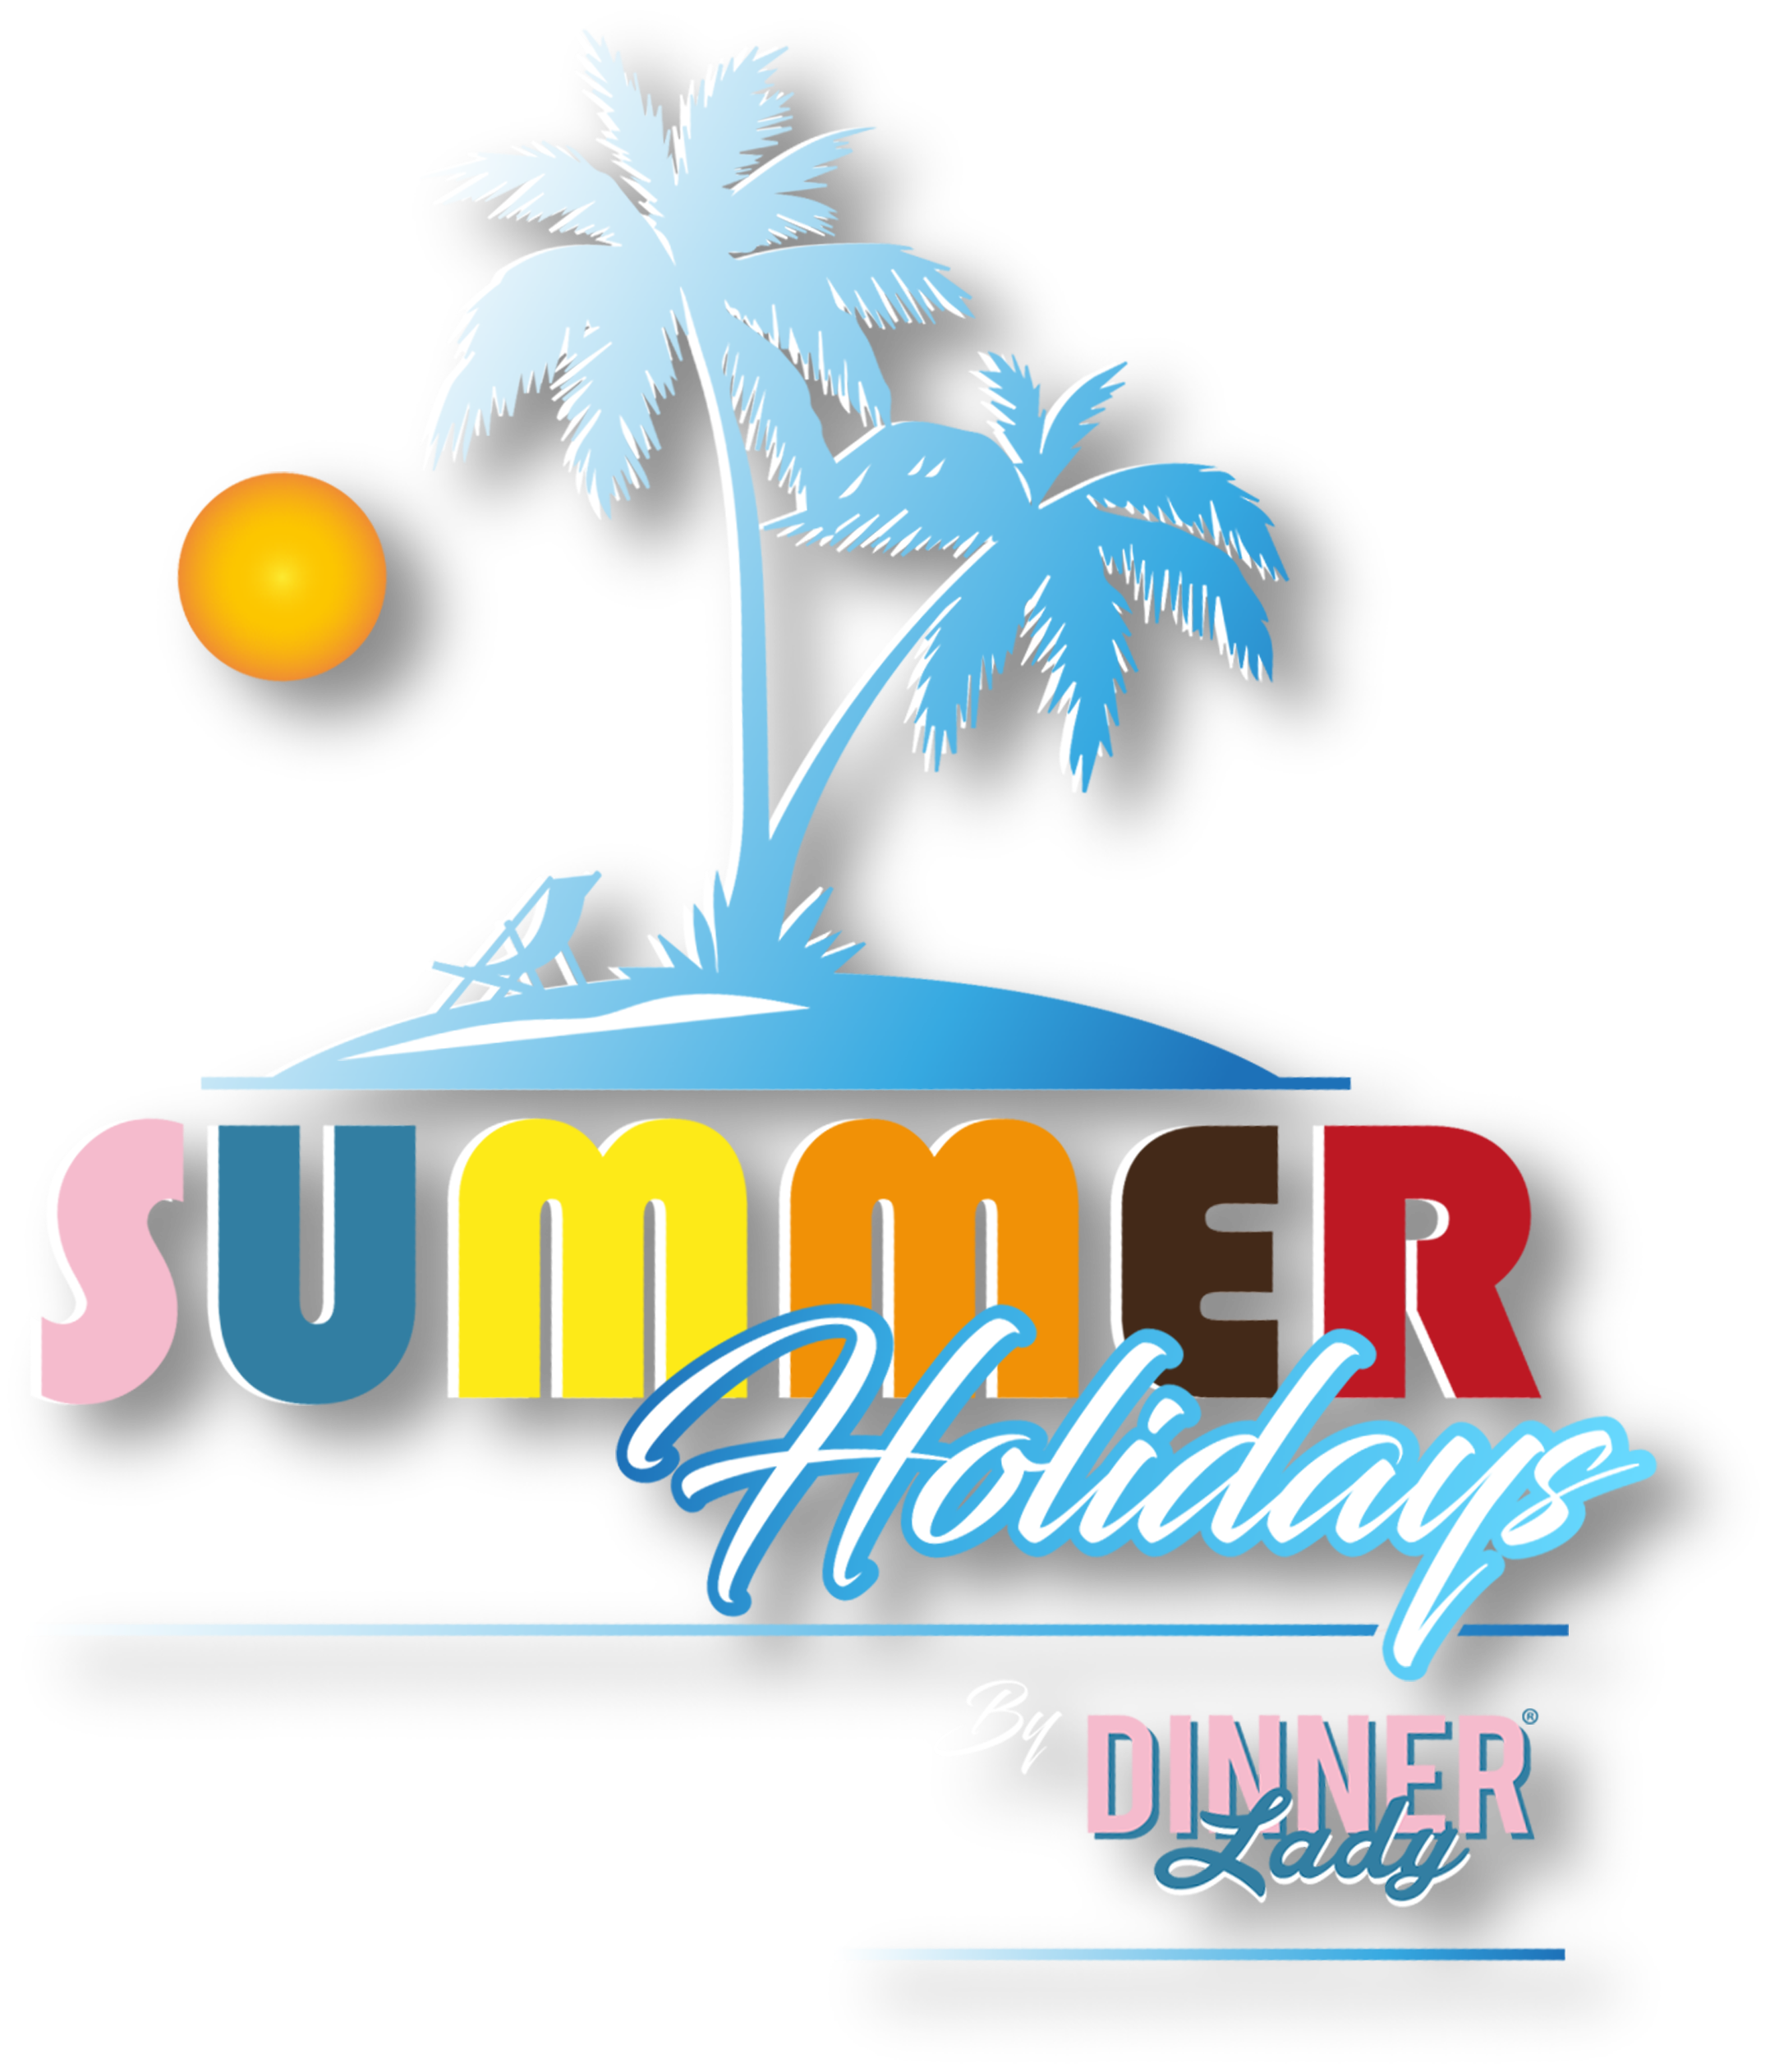 Dinner Lady - Summer Holidays